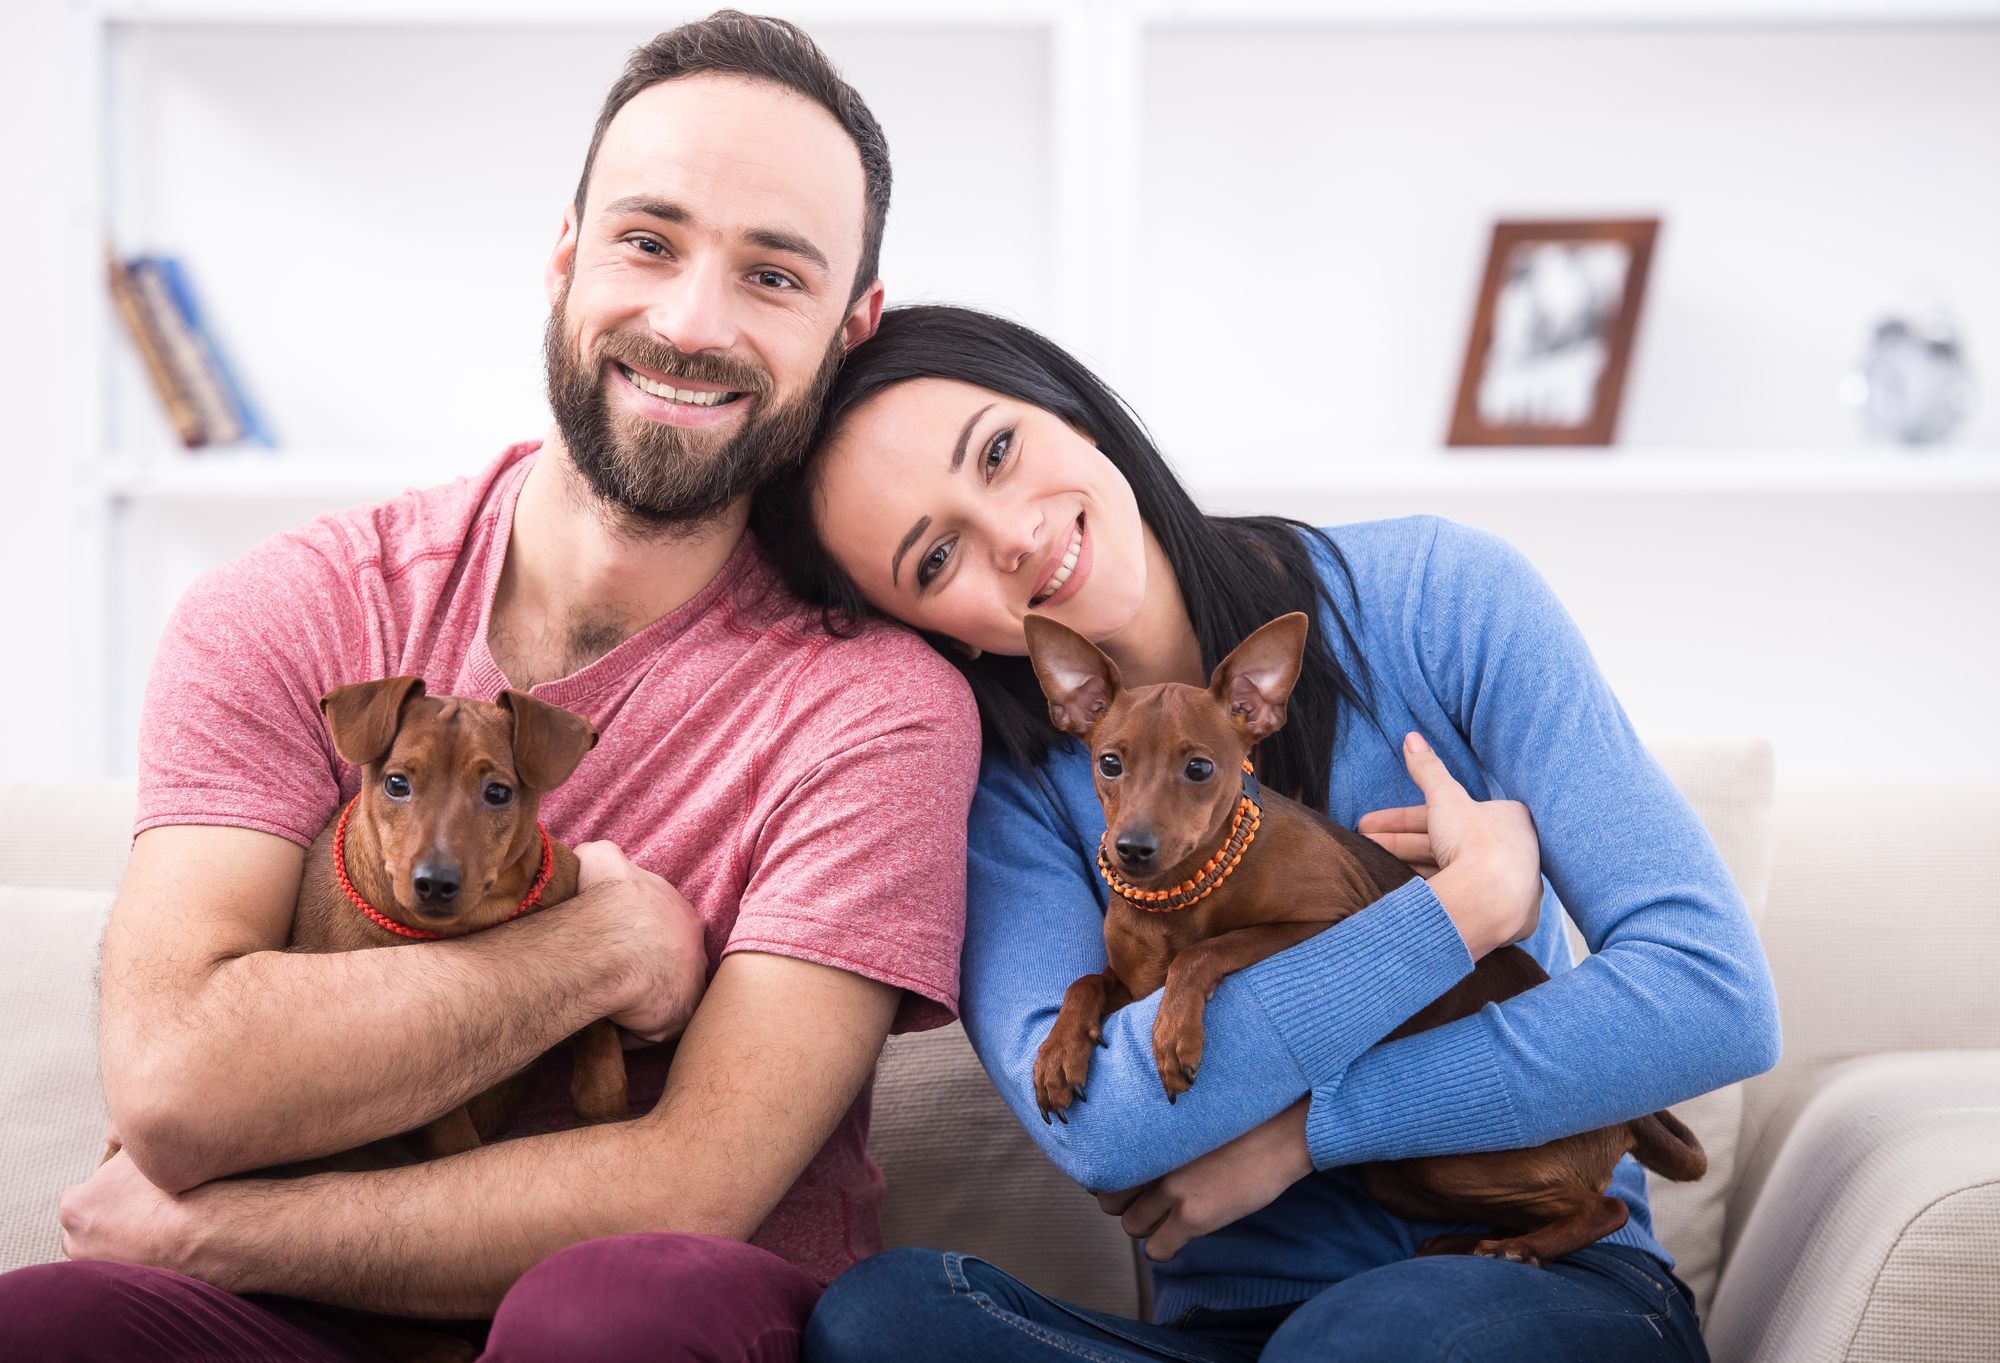 A man and a woman holding brown dogs